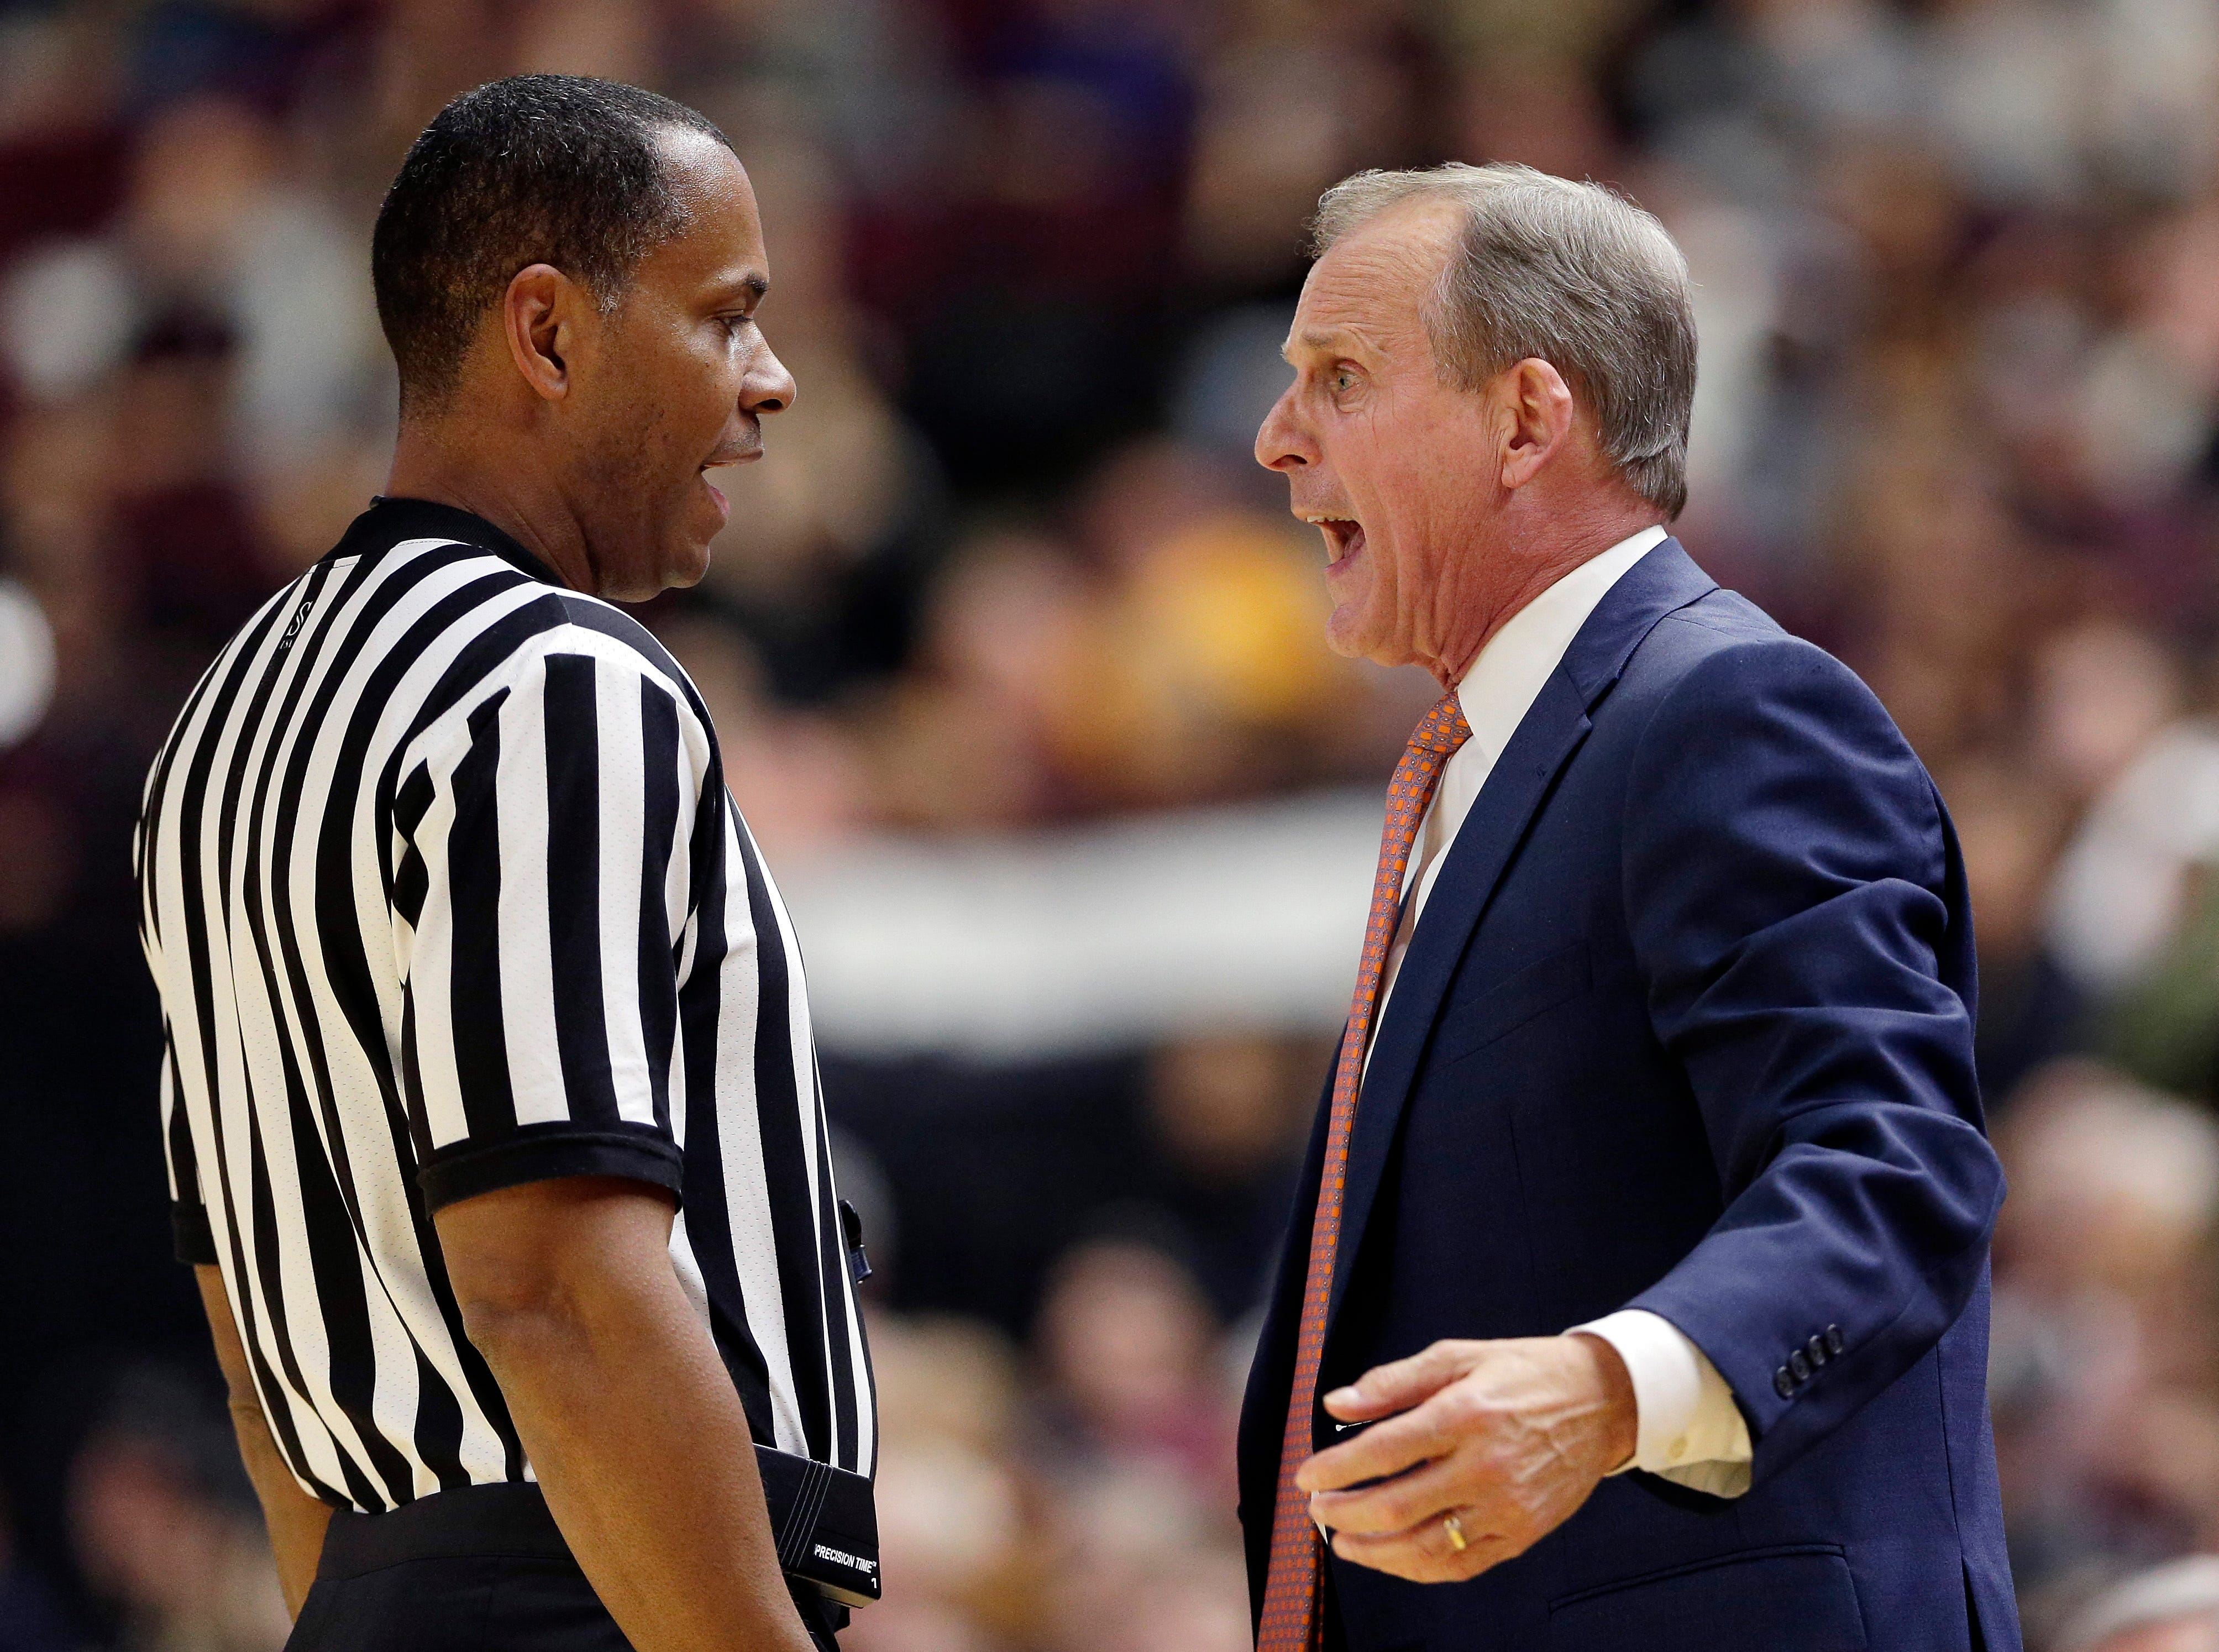 Tennessee head coach Rick Barnes, right, argues a foul call with an official during the second half of an NCAA college basketball game against Texas A&M, Saturday, Feb. 2, 2019, in College Station, Texas.